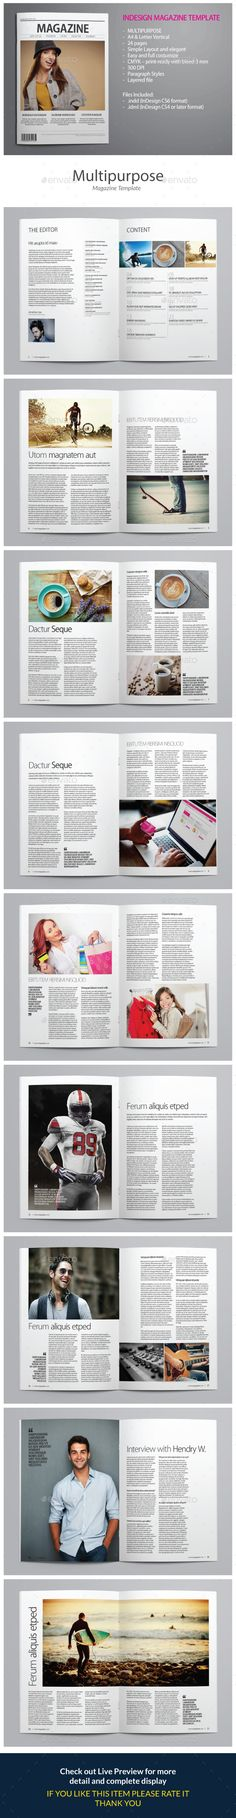 Magazine Cover Template Indesign | It is, As and Template